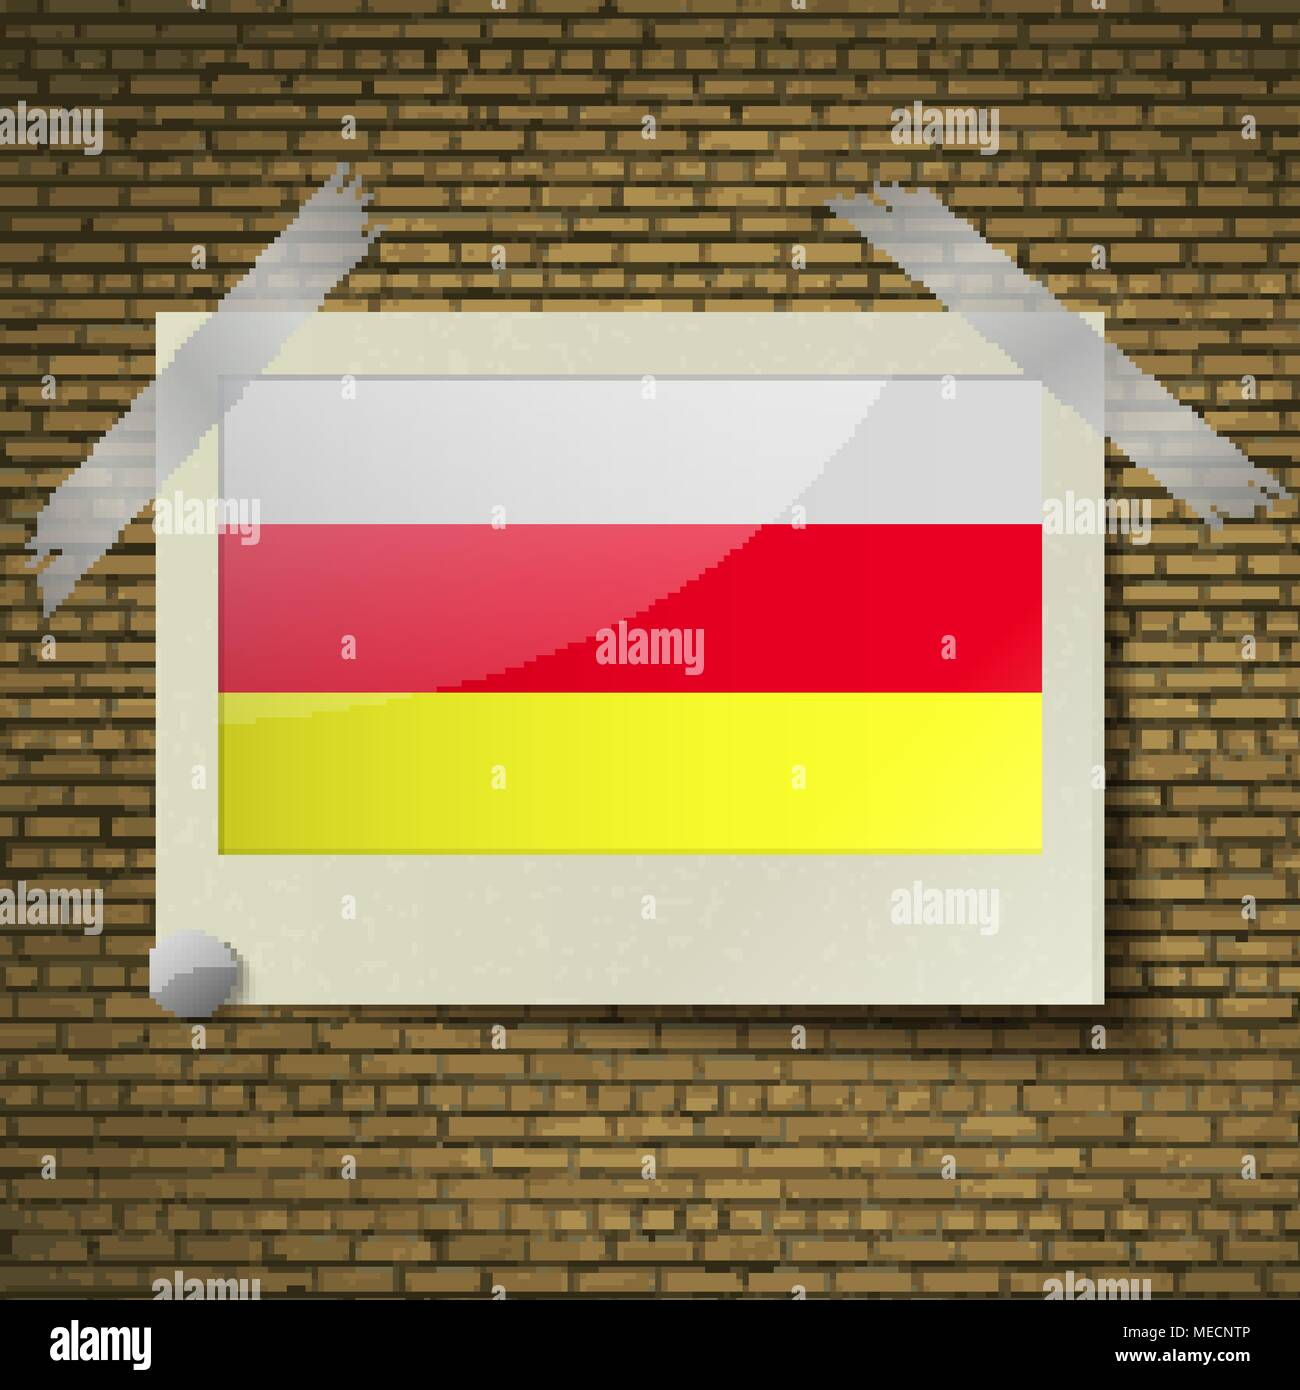 Flags of North Ossetia at frame on a brick background. Vector illustration - Stock Image